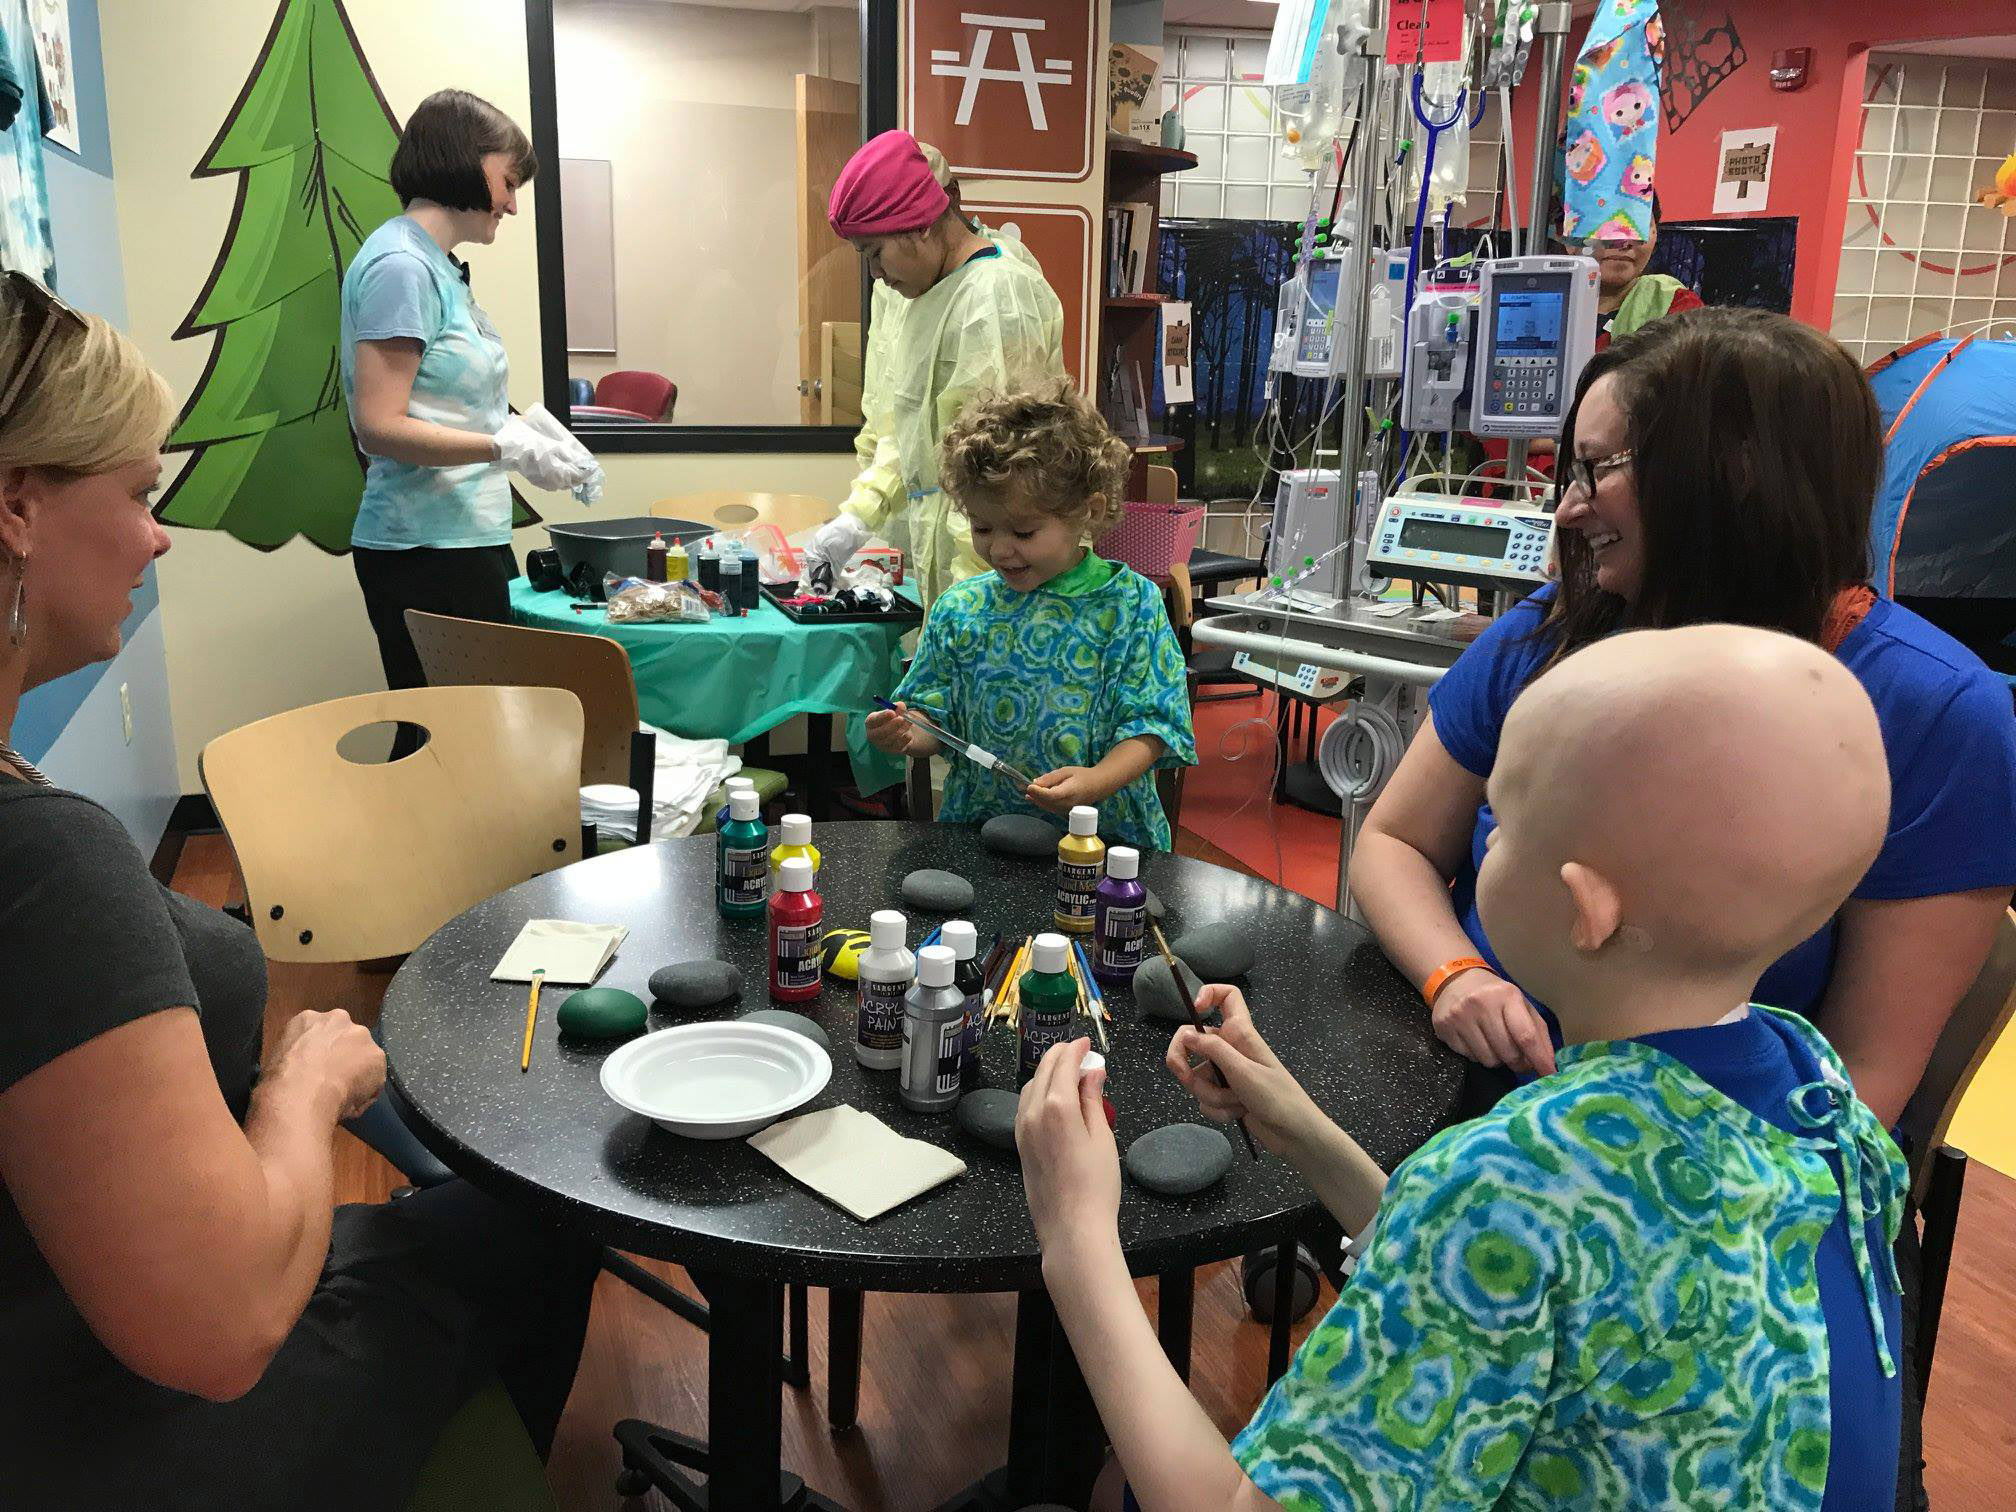 Patients celebrate camp with fun activities